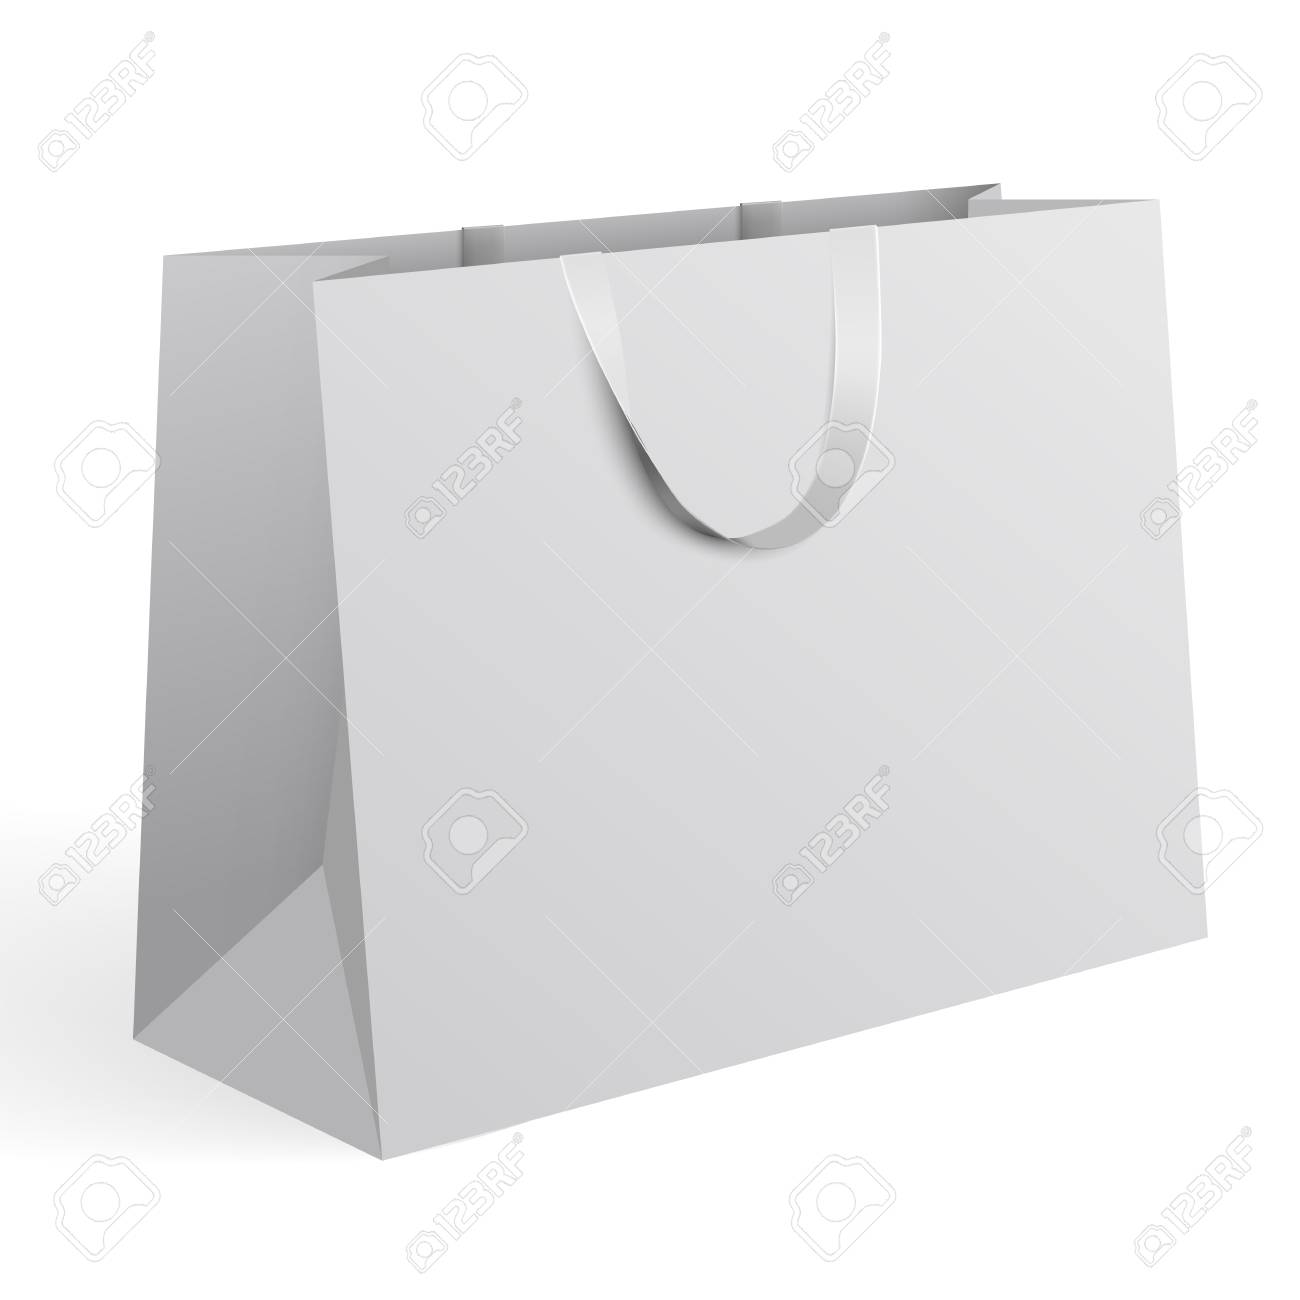 3d Realistic Vector Illustration Of White Paper Shopping Bag ...